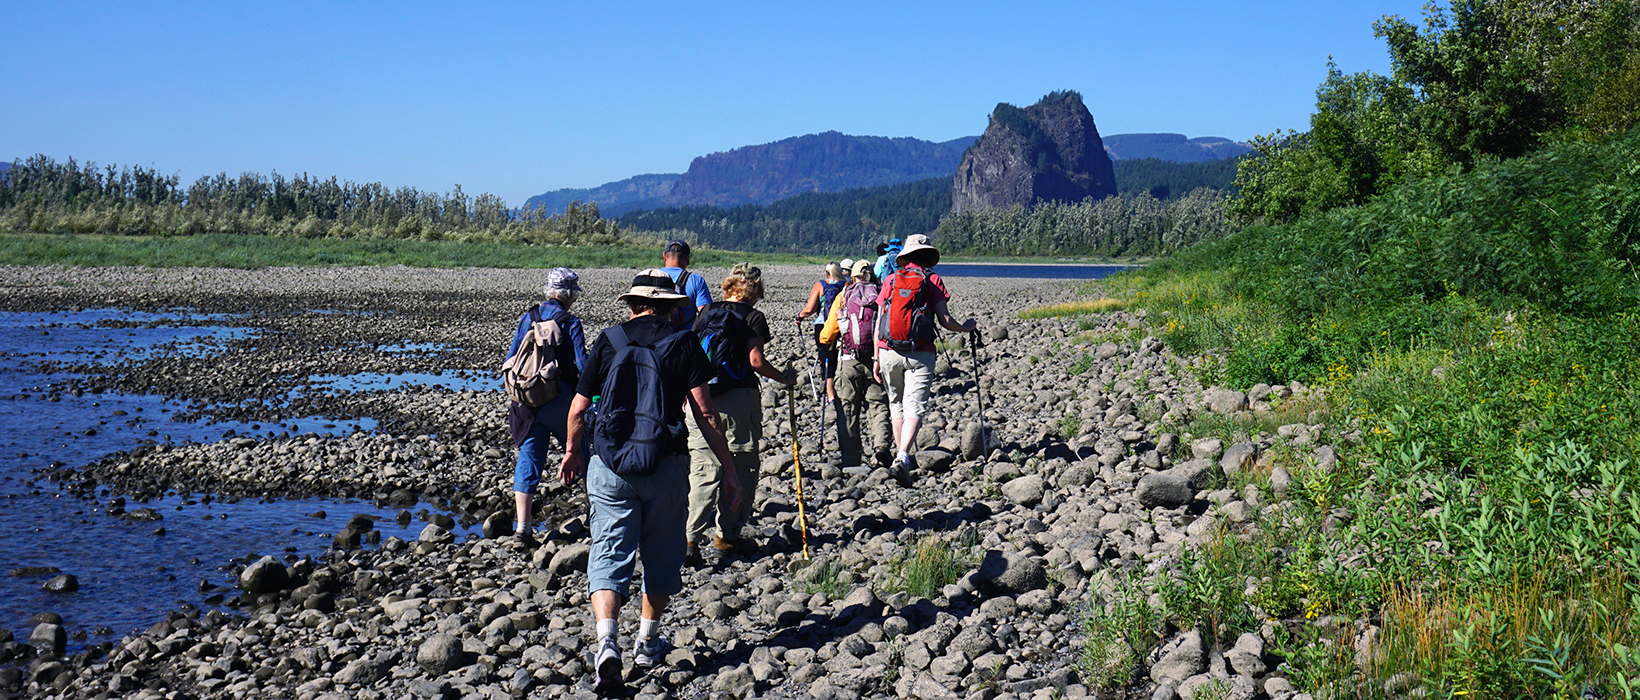 A group of hikers on a guided tour walk along the rocky banks of the Columbia River while heading toward Beacon Rock